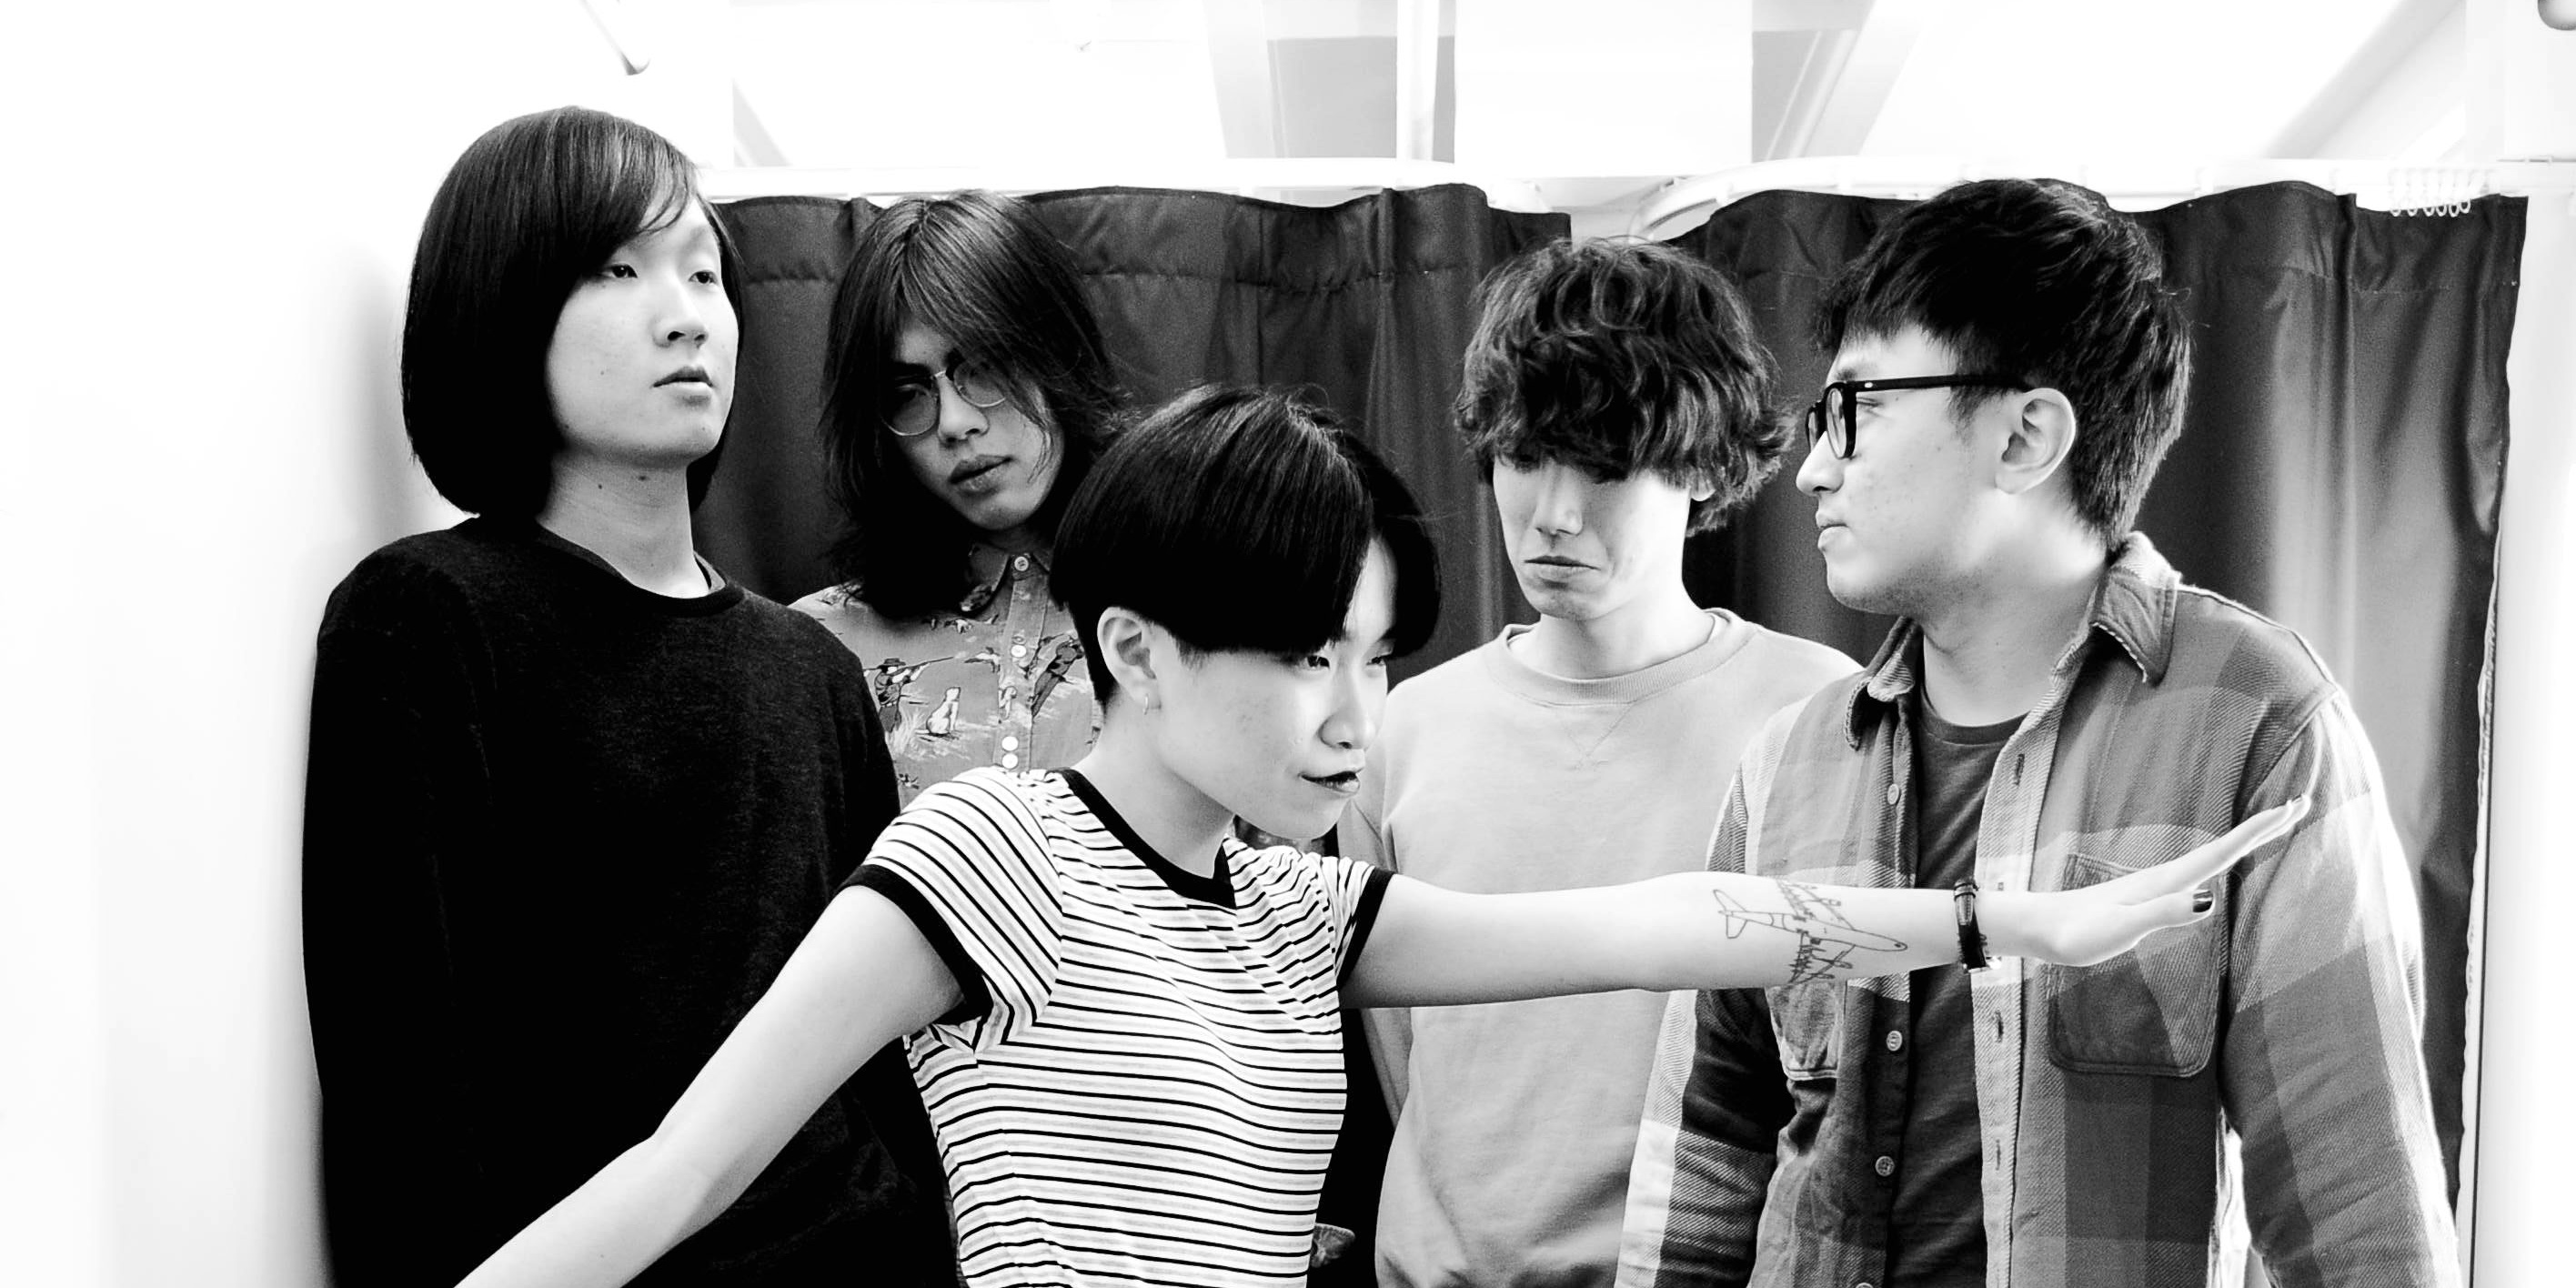 LISTEN: Hong Kong shoegazers Thud release new single 'Prime of Pride', mixed by Yuck's Max Bloom